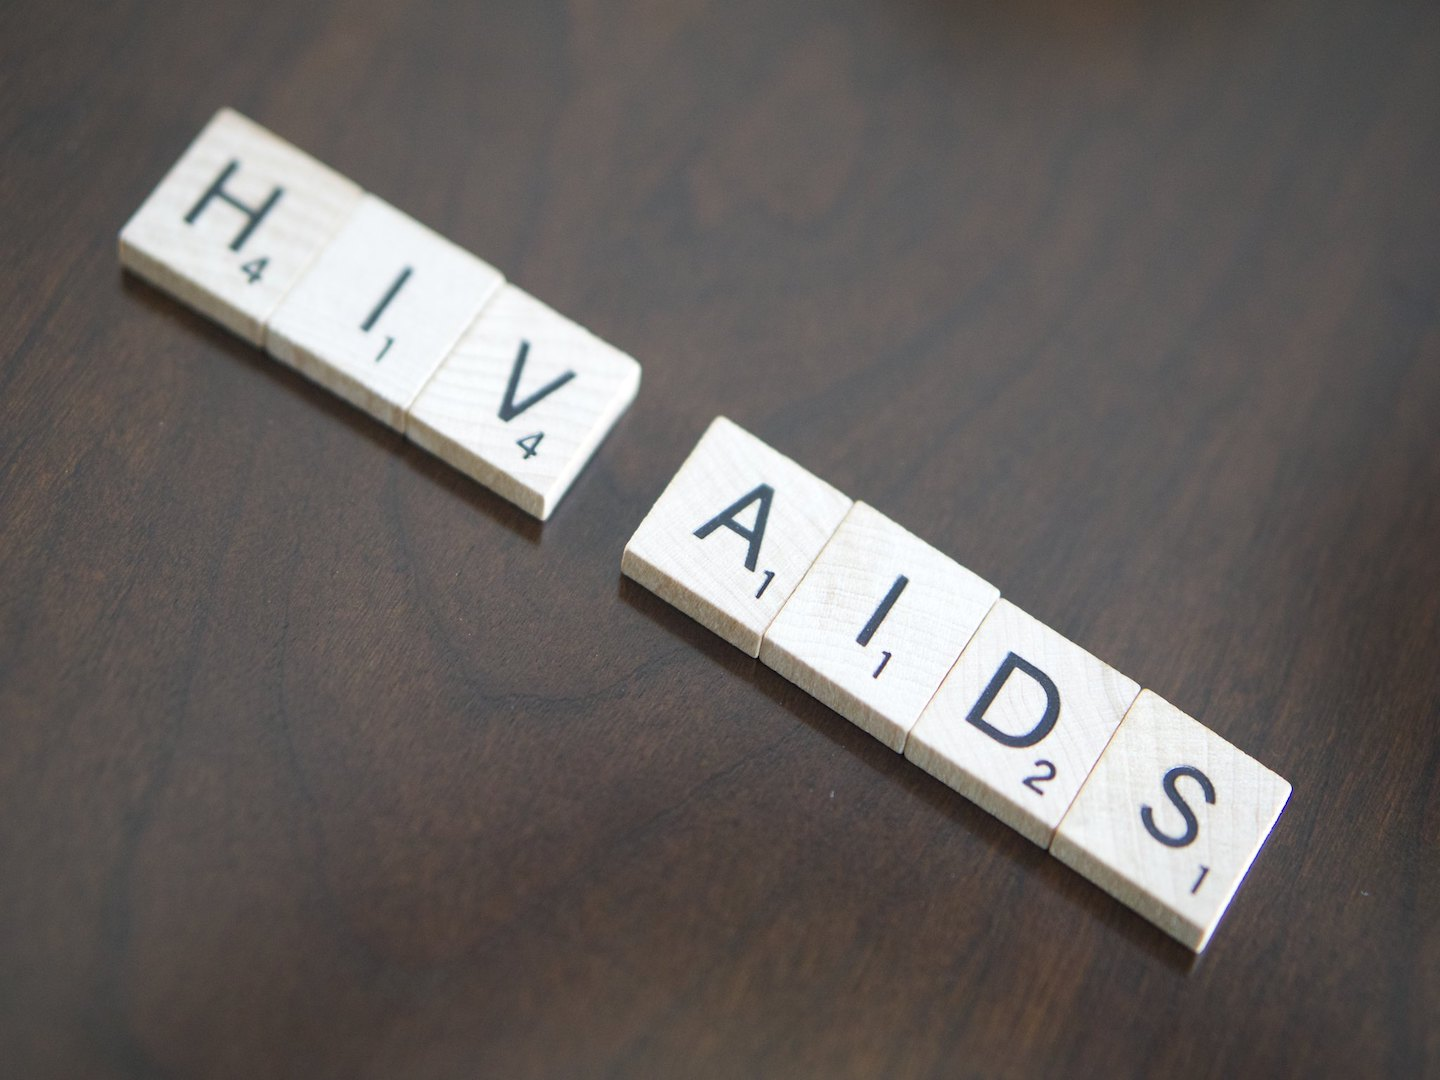 HIV AIDS Scrabble